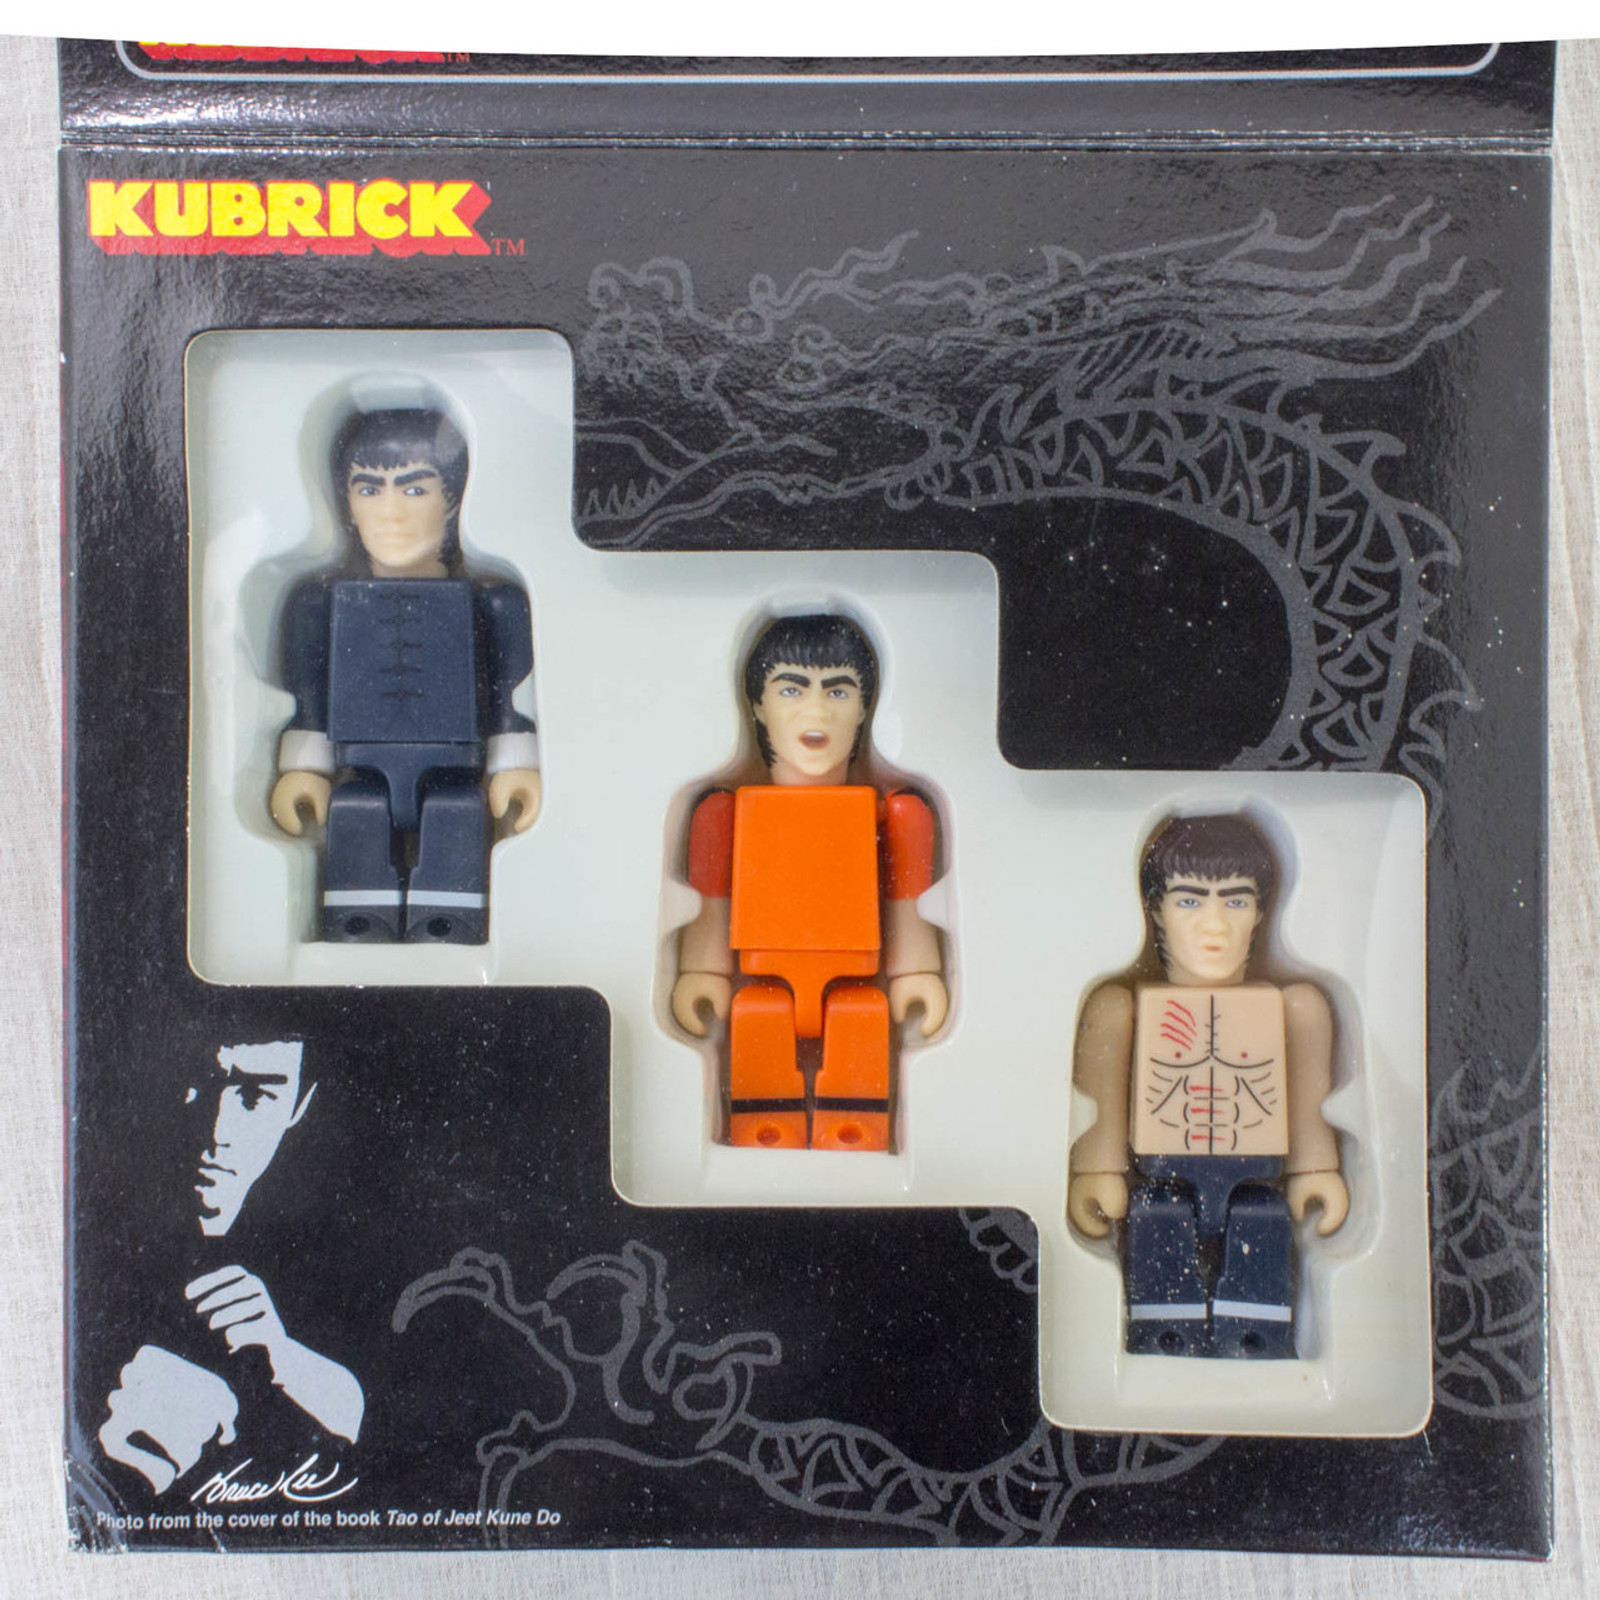 BRUCE LEE Kubrick figure set Medicom Toy JAPAN KUNG FU MOVIE